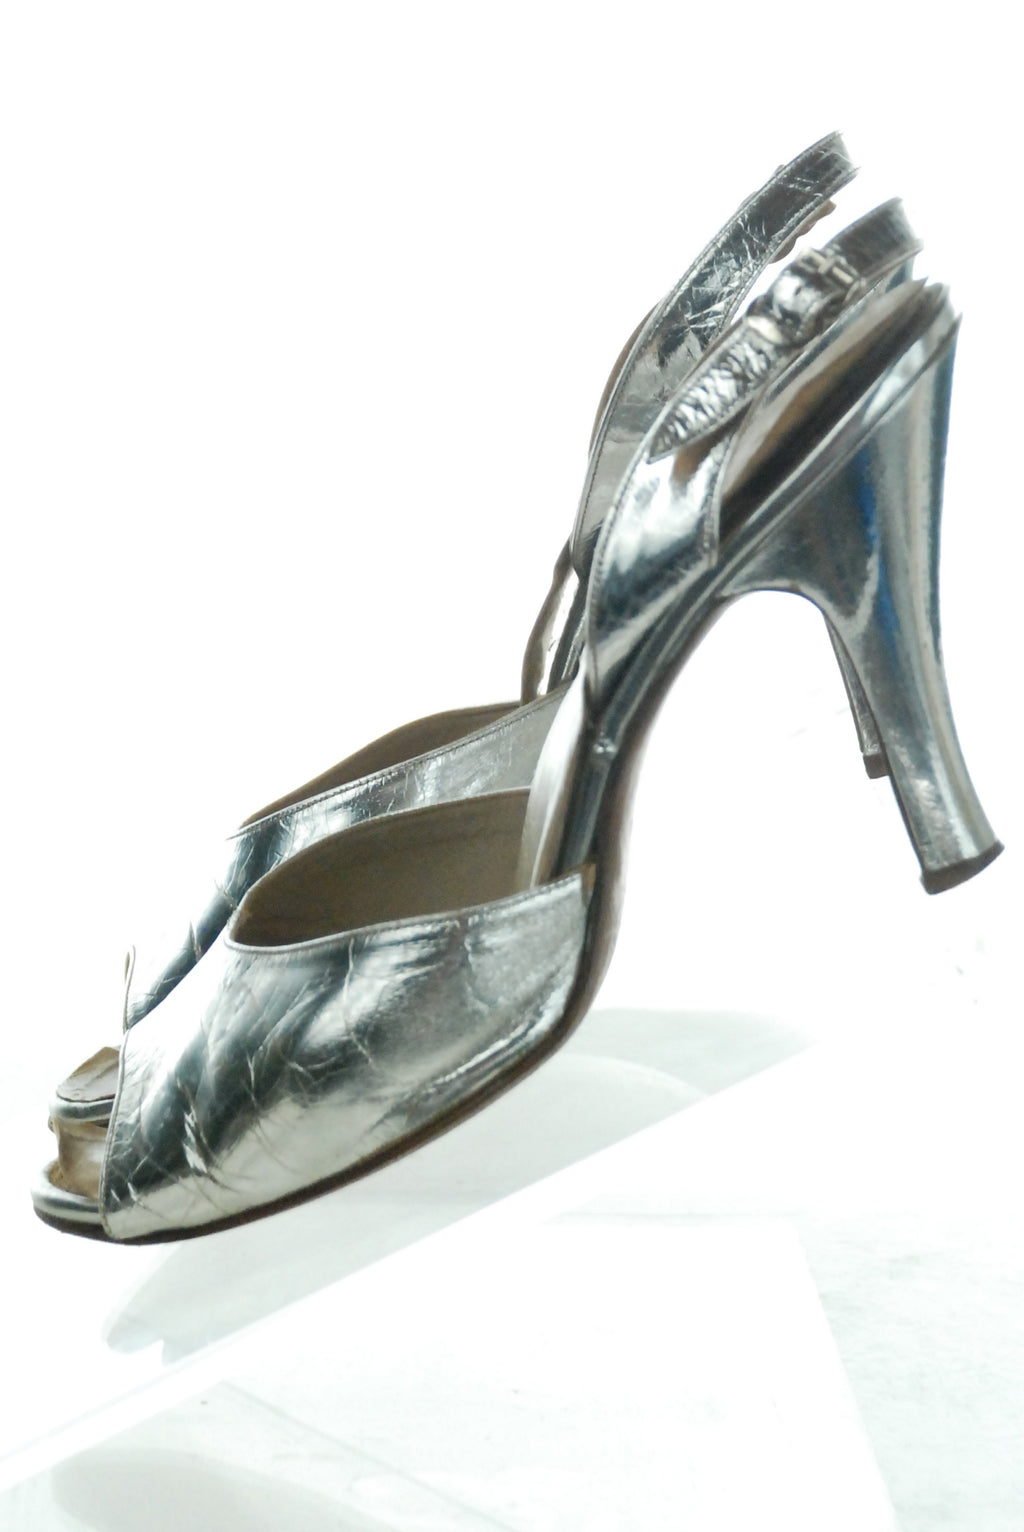 Bright Metallic Silver 1950s Slingback Shoes Perfect Evening Heels Size 7